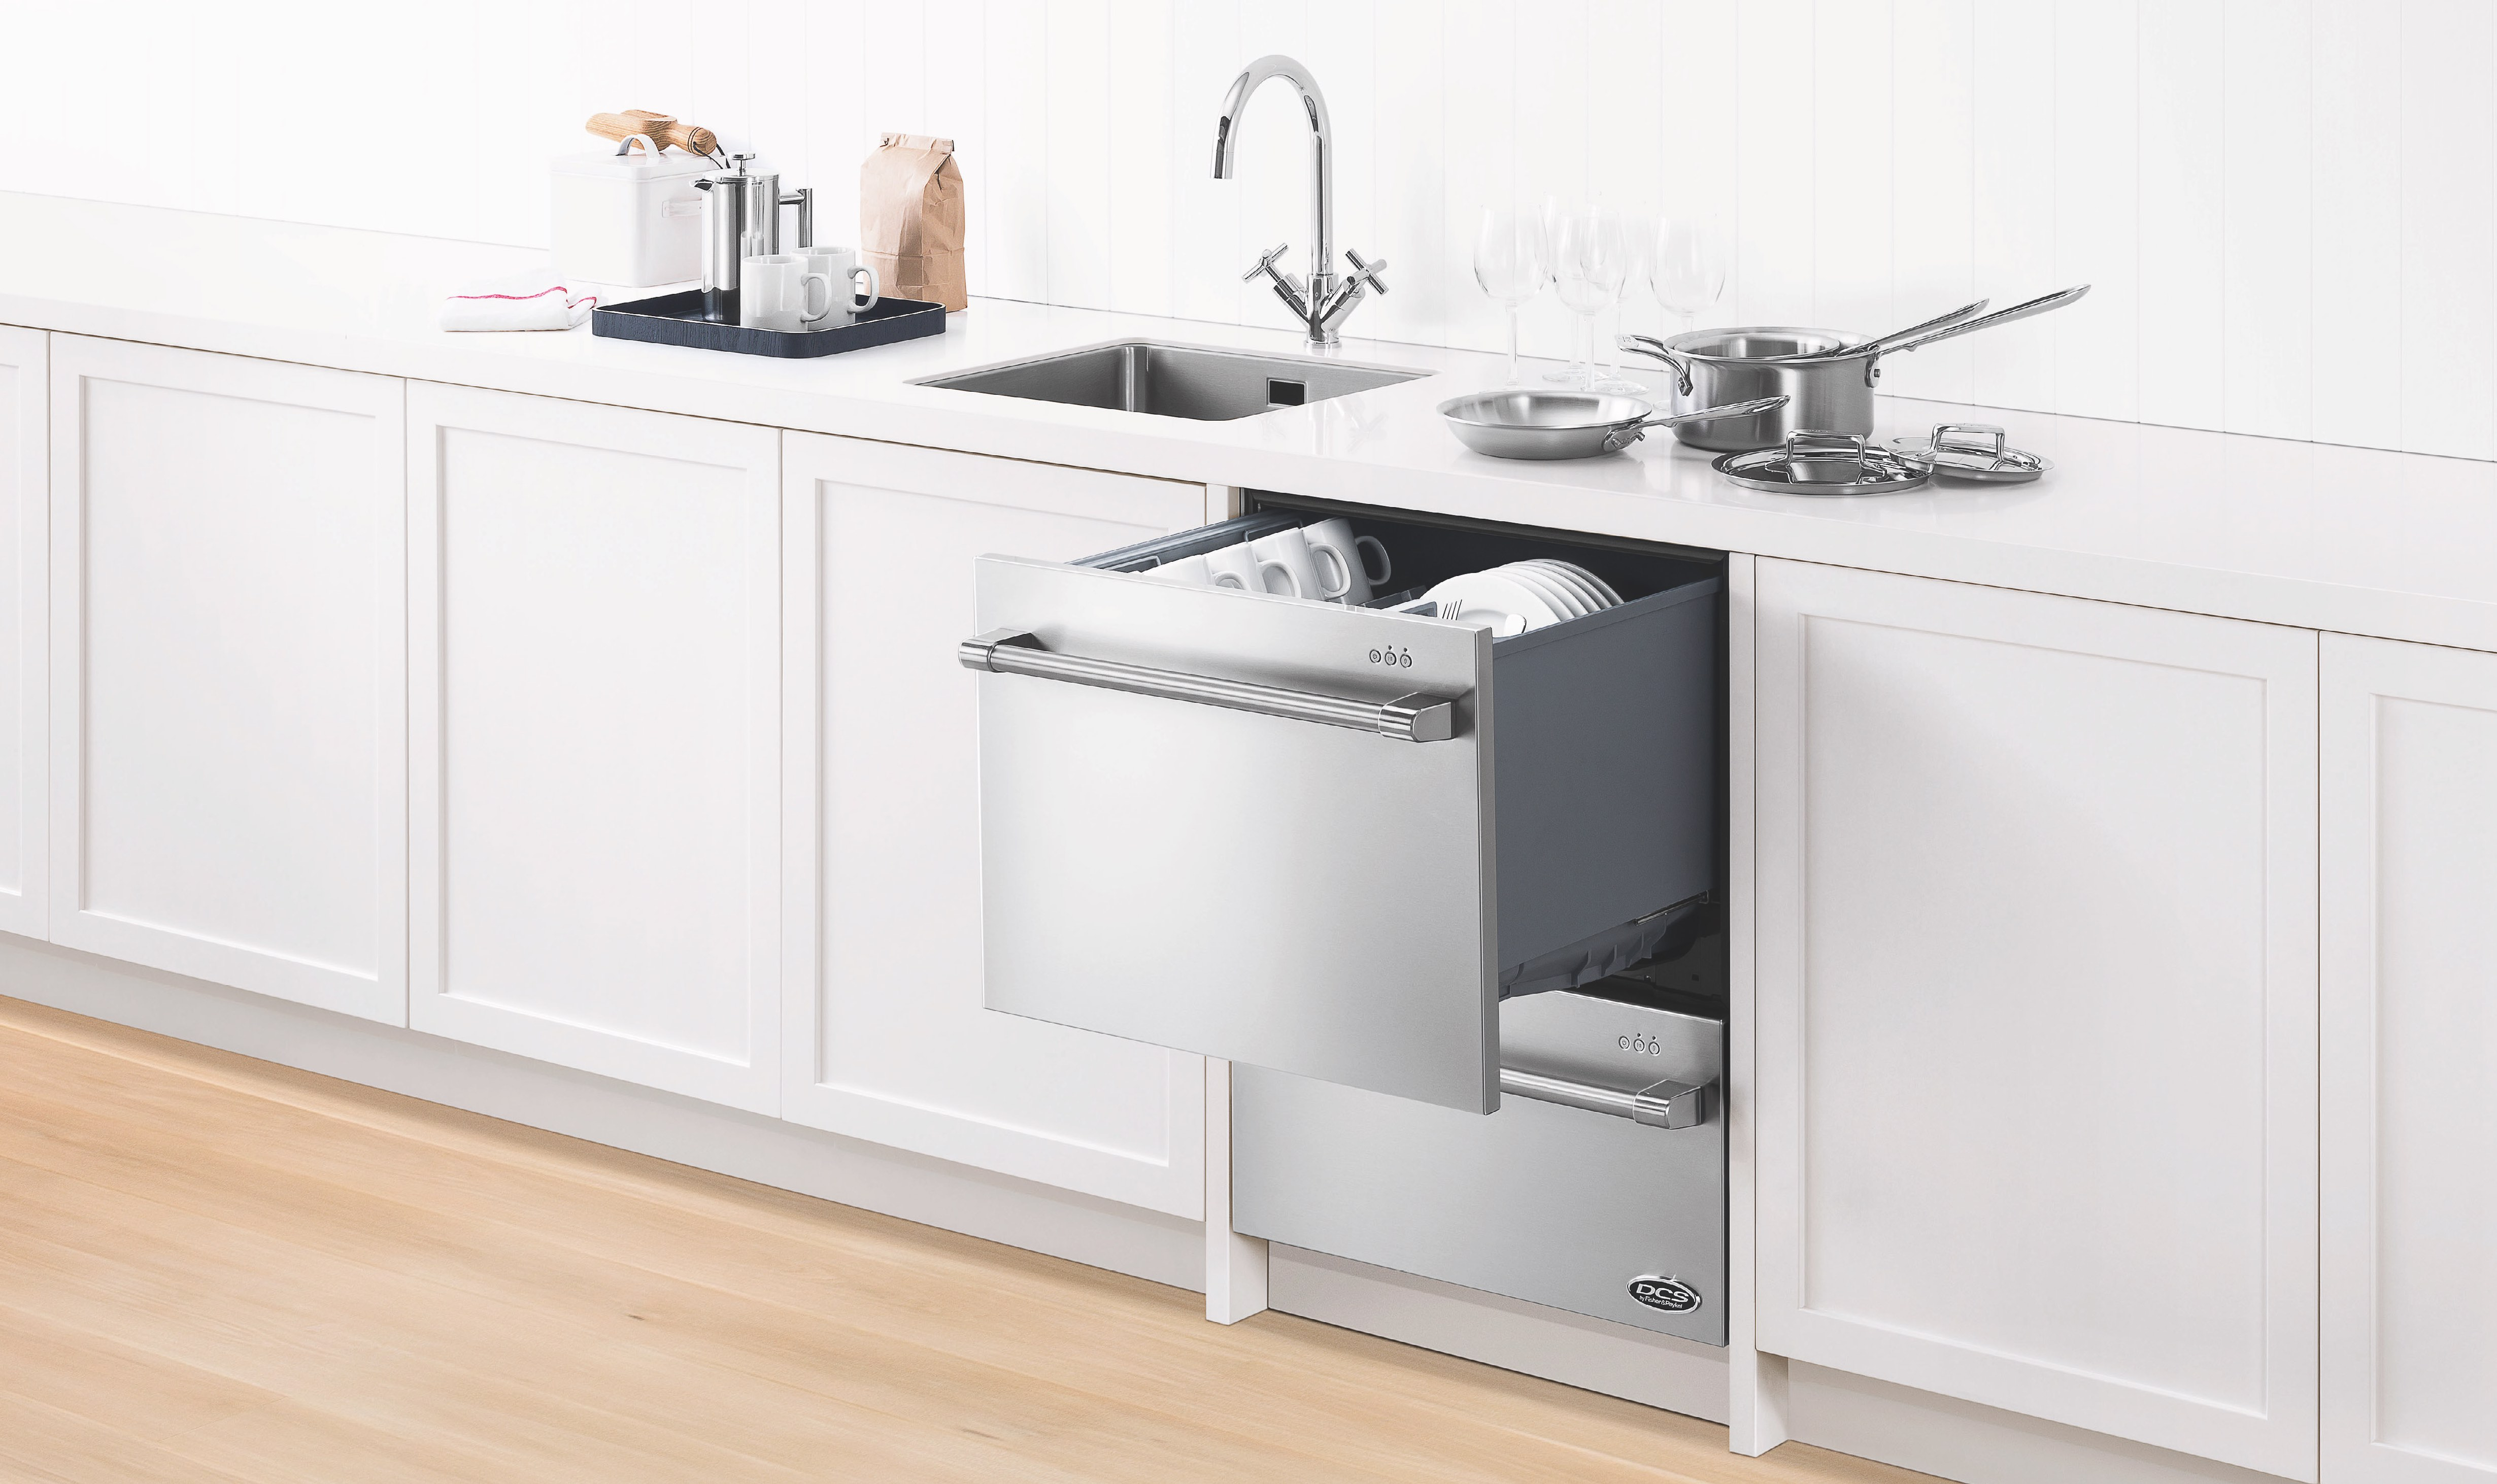 image hidden single ge product dispatcher appliance dishwasher controls drawer requesttype with specs gea name appliances